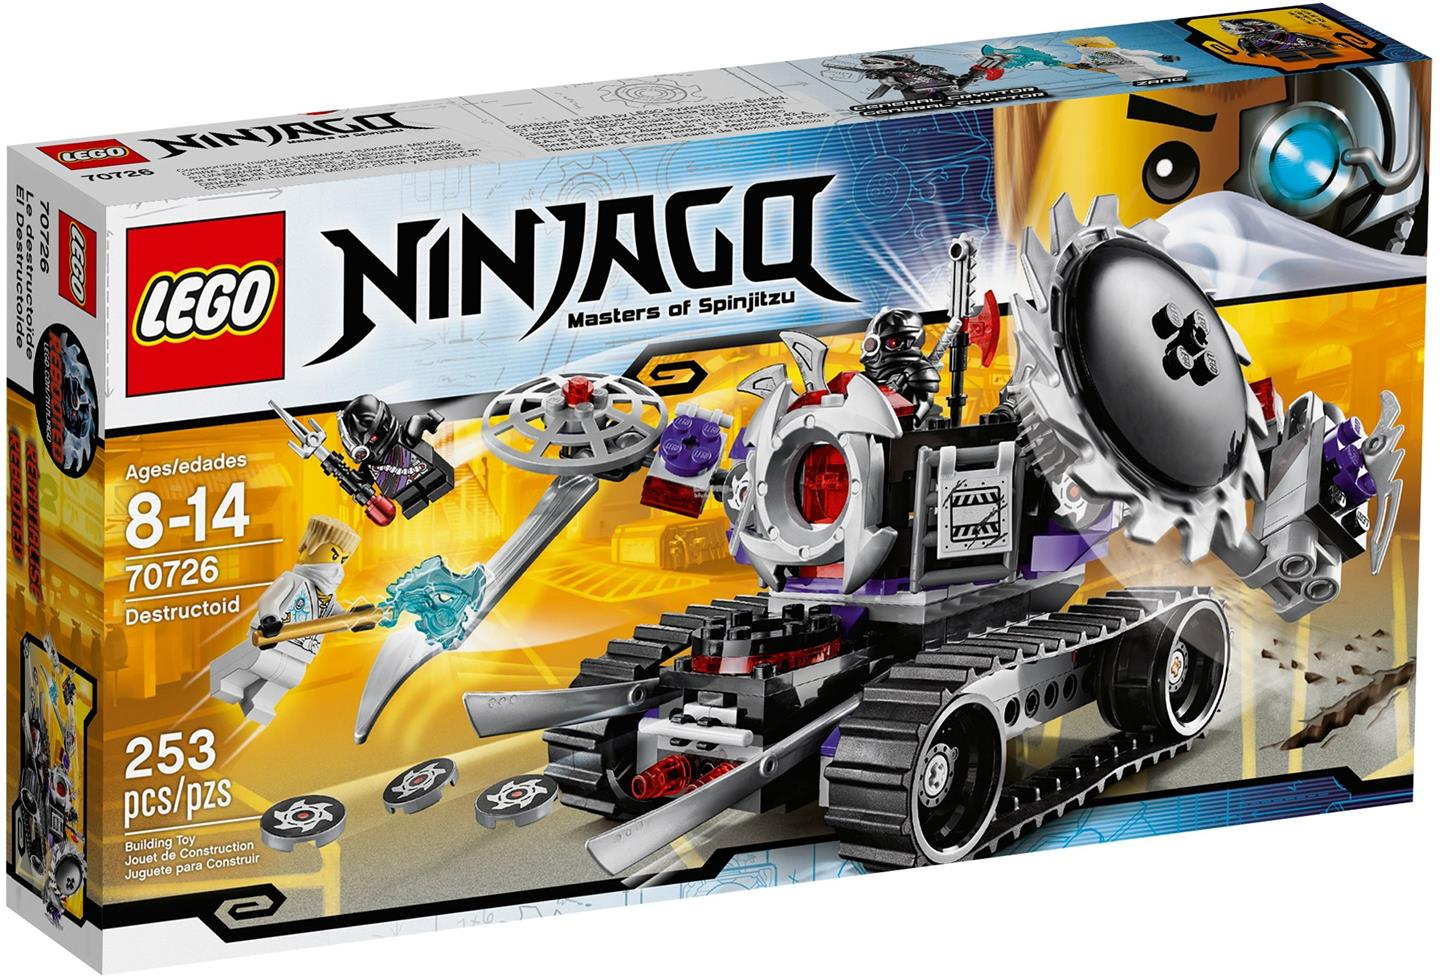 Original Lego NinjaGo 70726 Destructoid New MISB